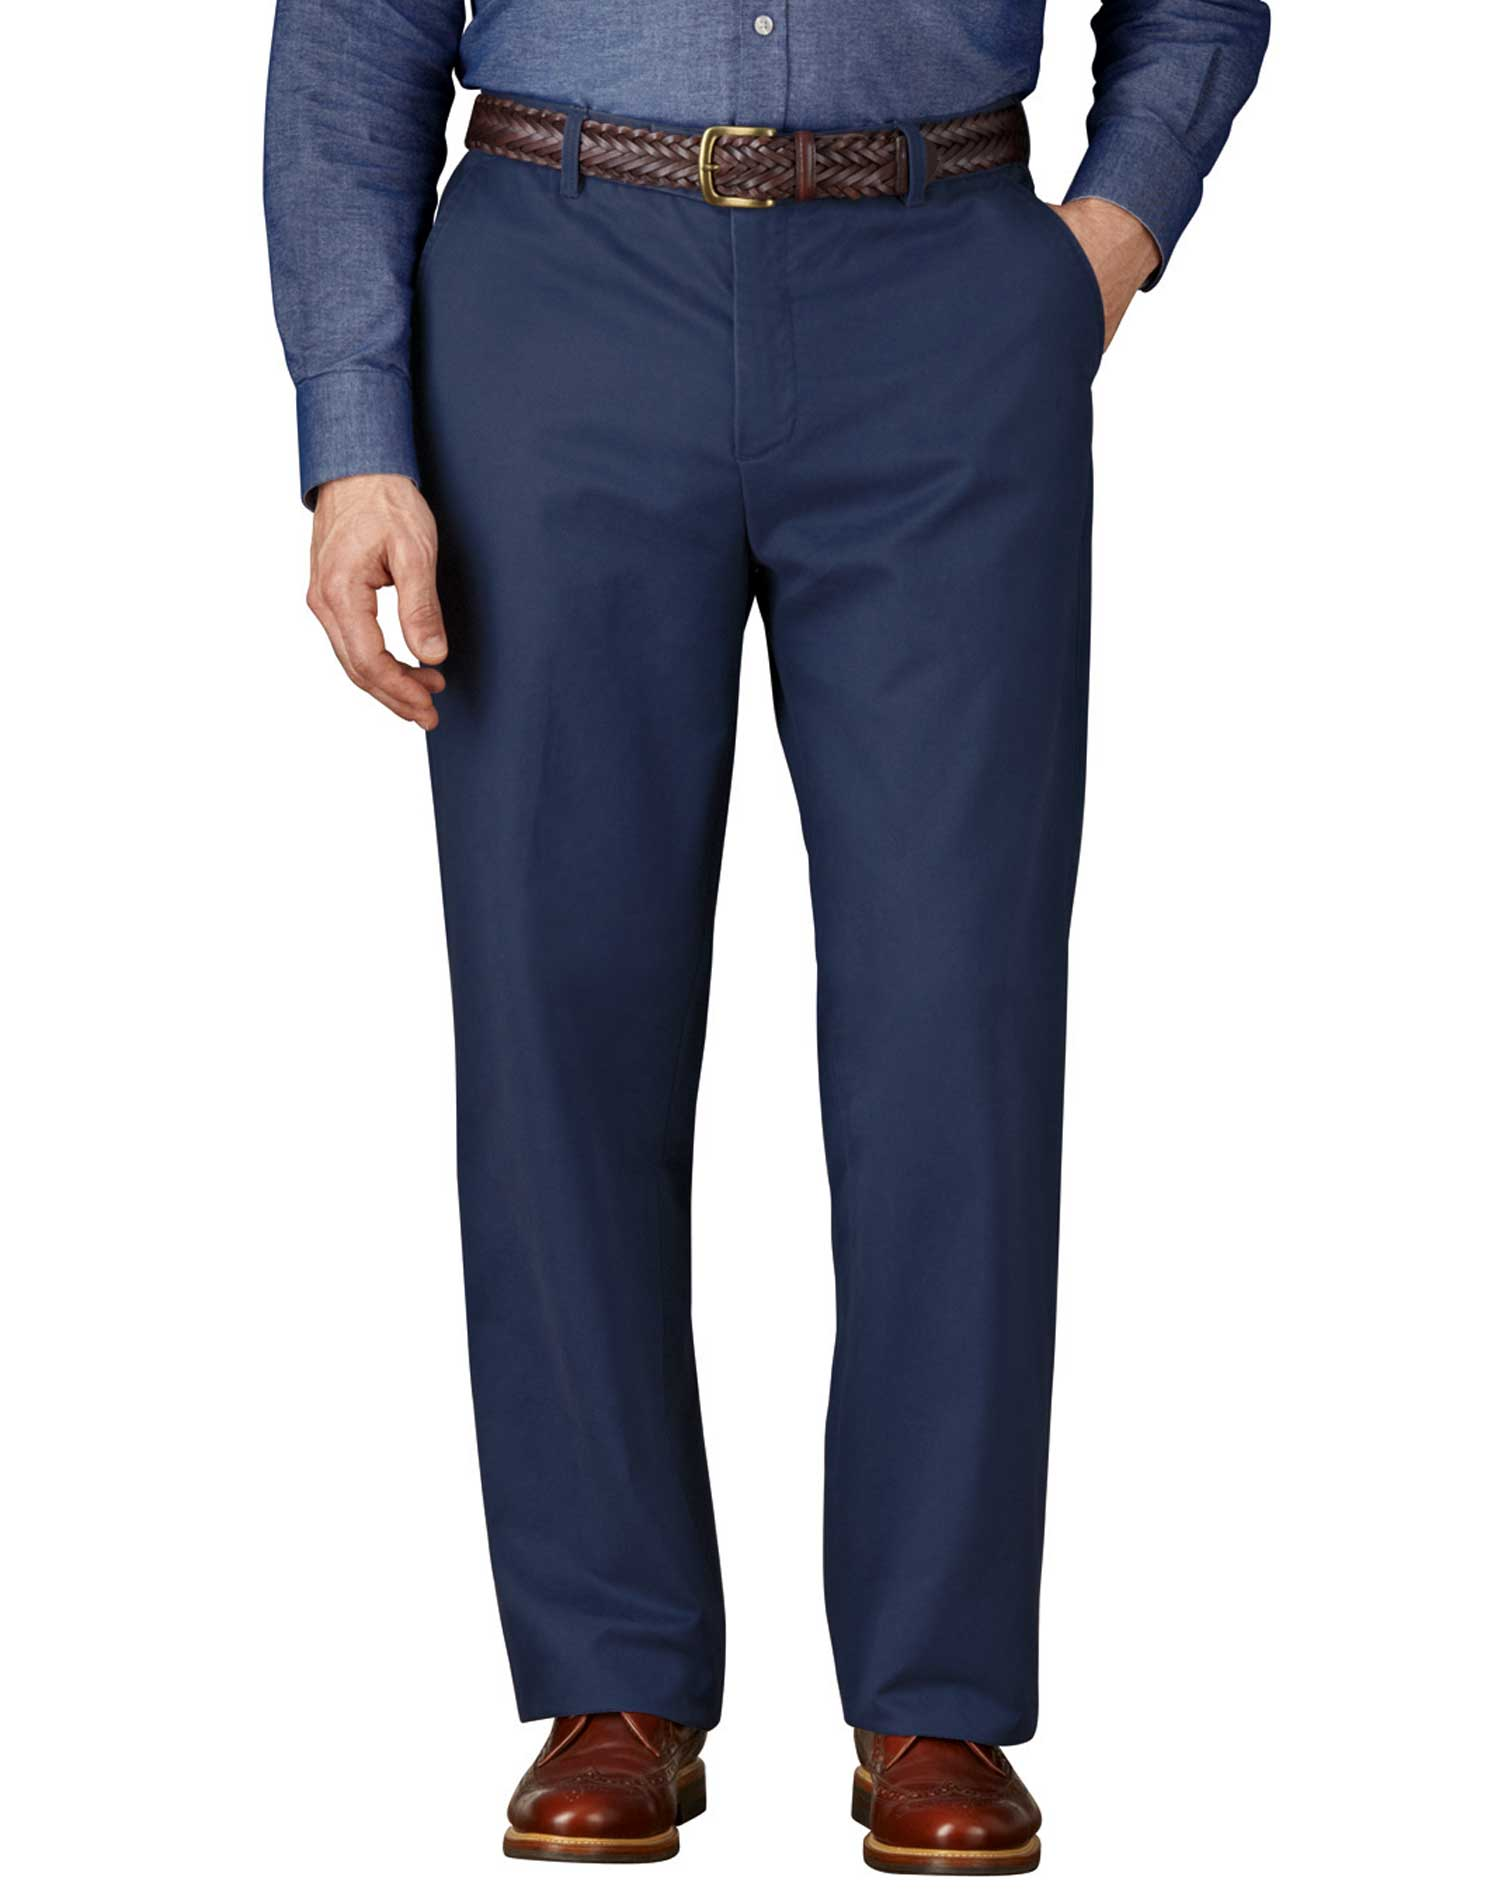 Blue Classic Fit Flat Front Weekend Cotton Chino Trousers Size W34 L38 by Charles Tyrwhitt